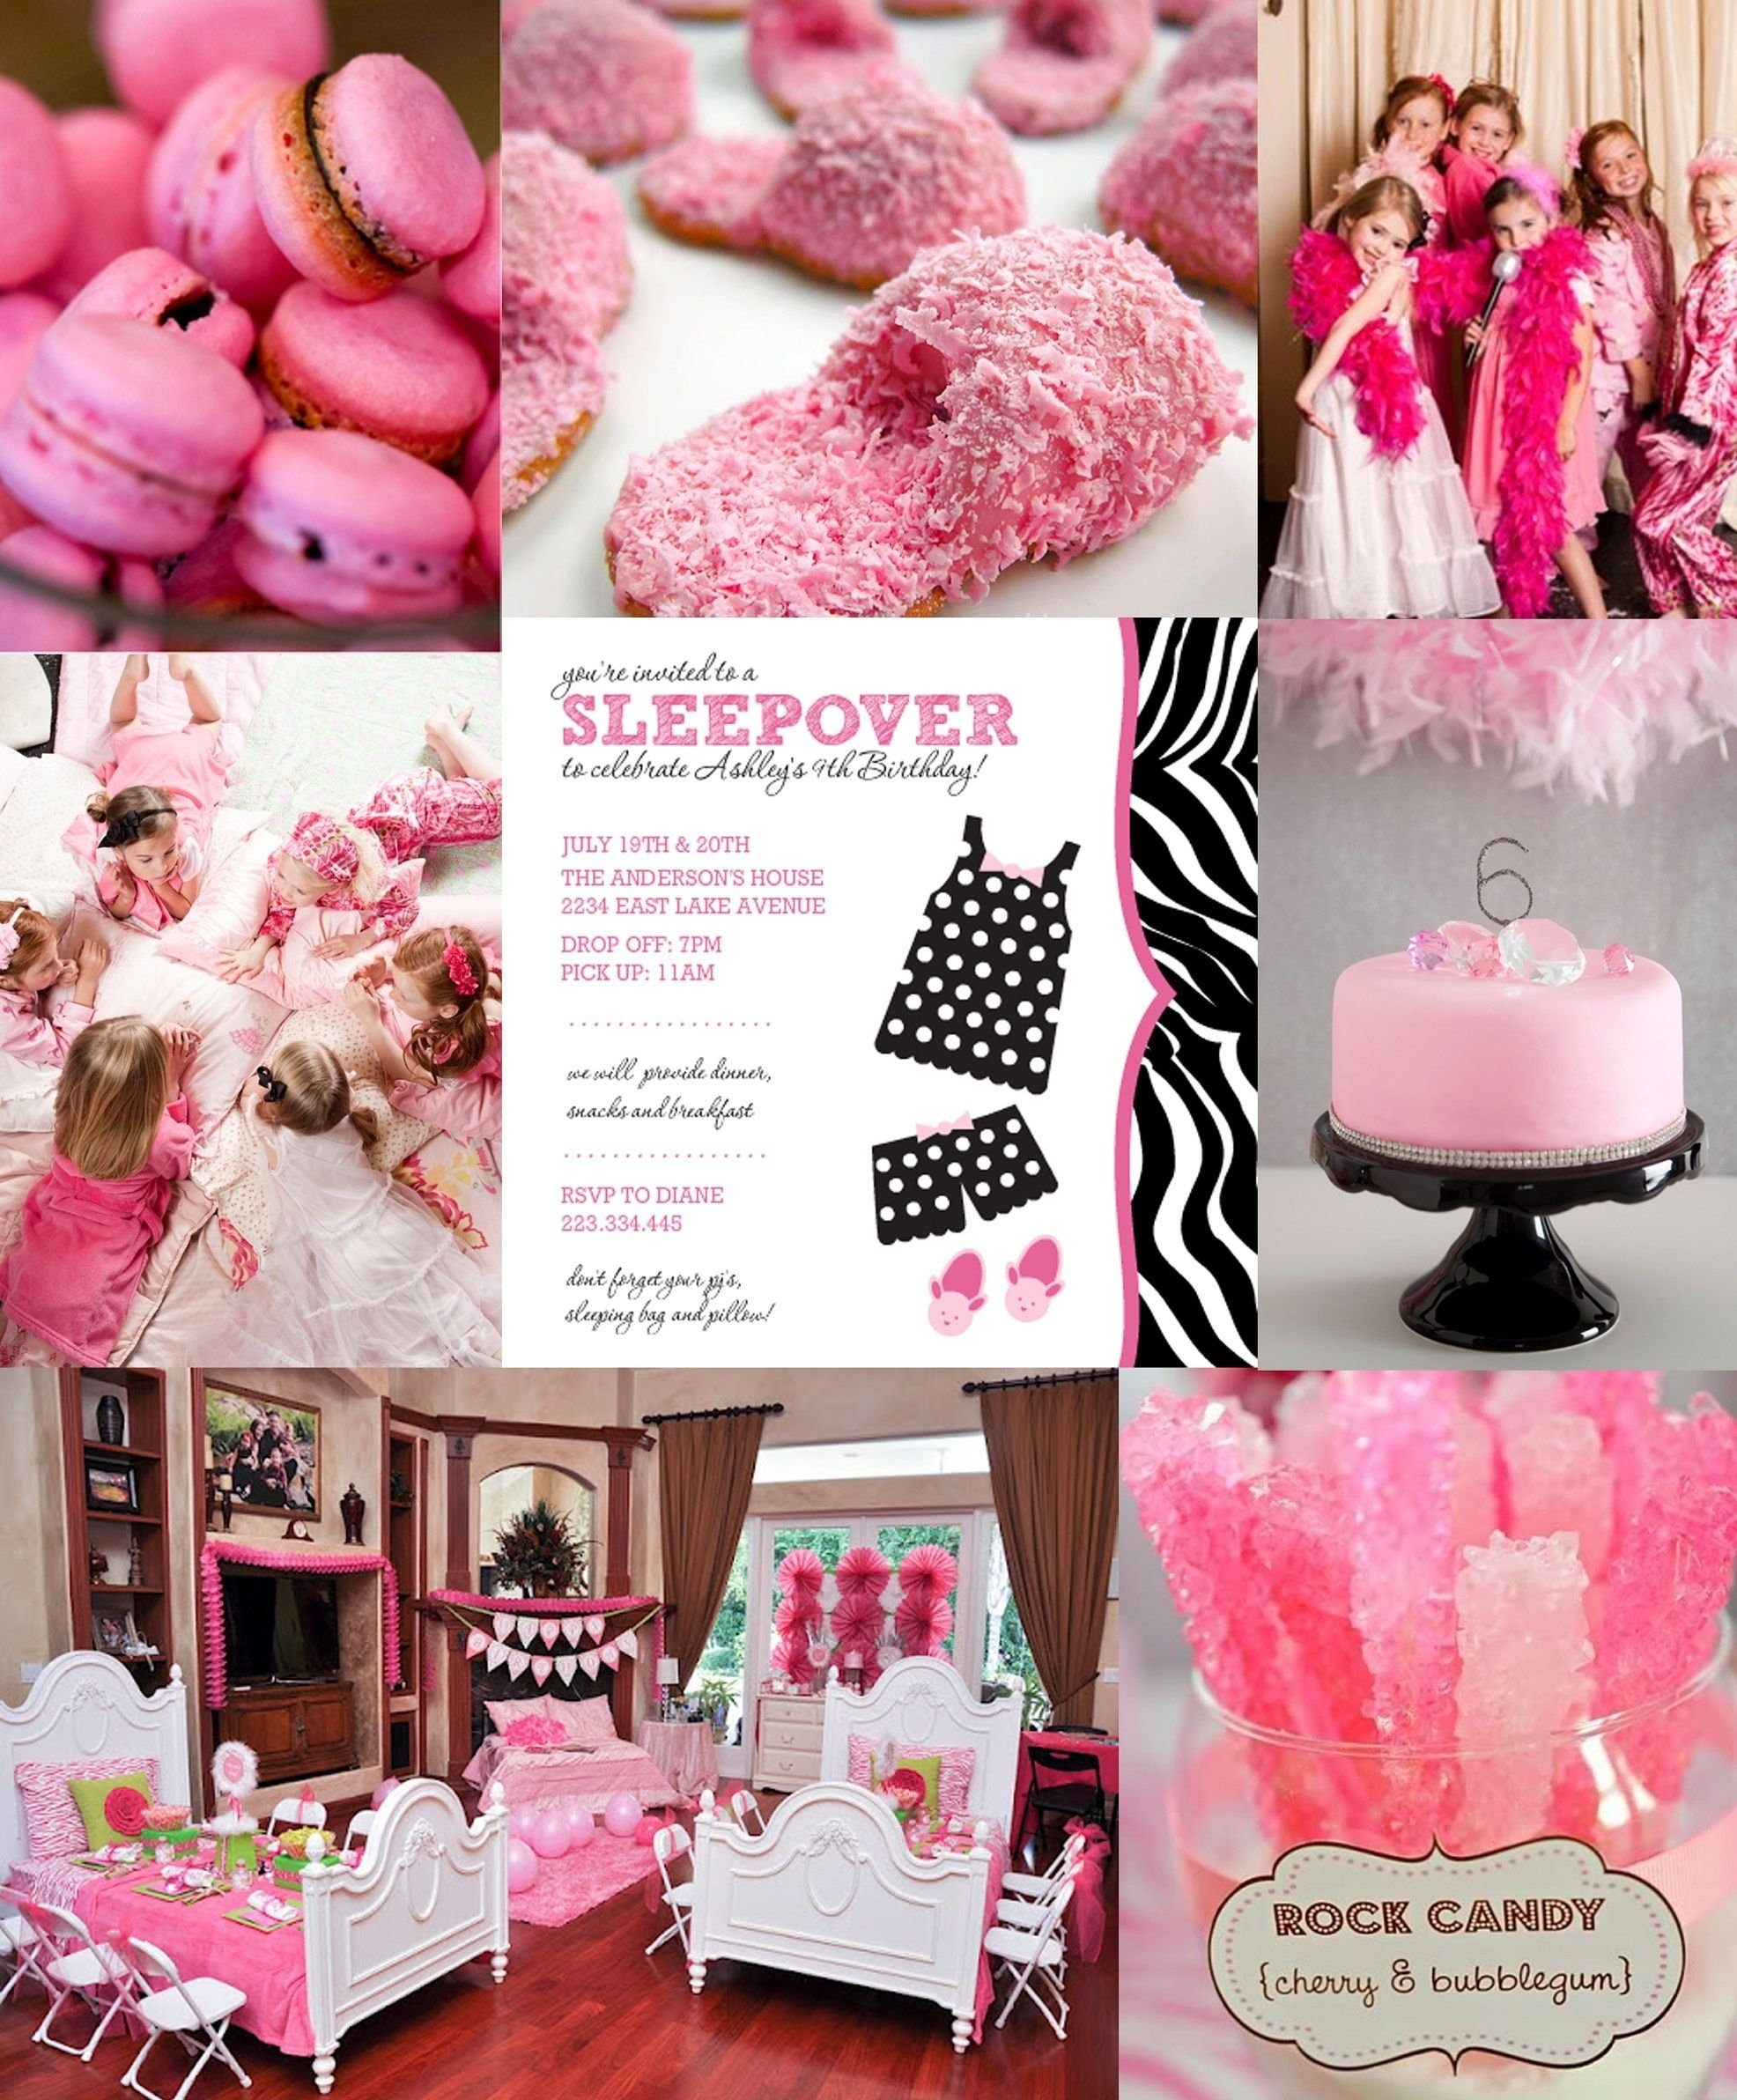 10 Most Recommended Ideas For A Slumber Party slumber party ideas slumber party inspiration board sleepover 1 2020